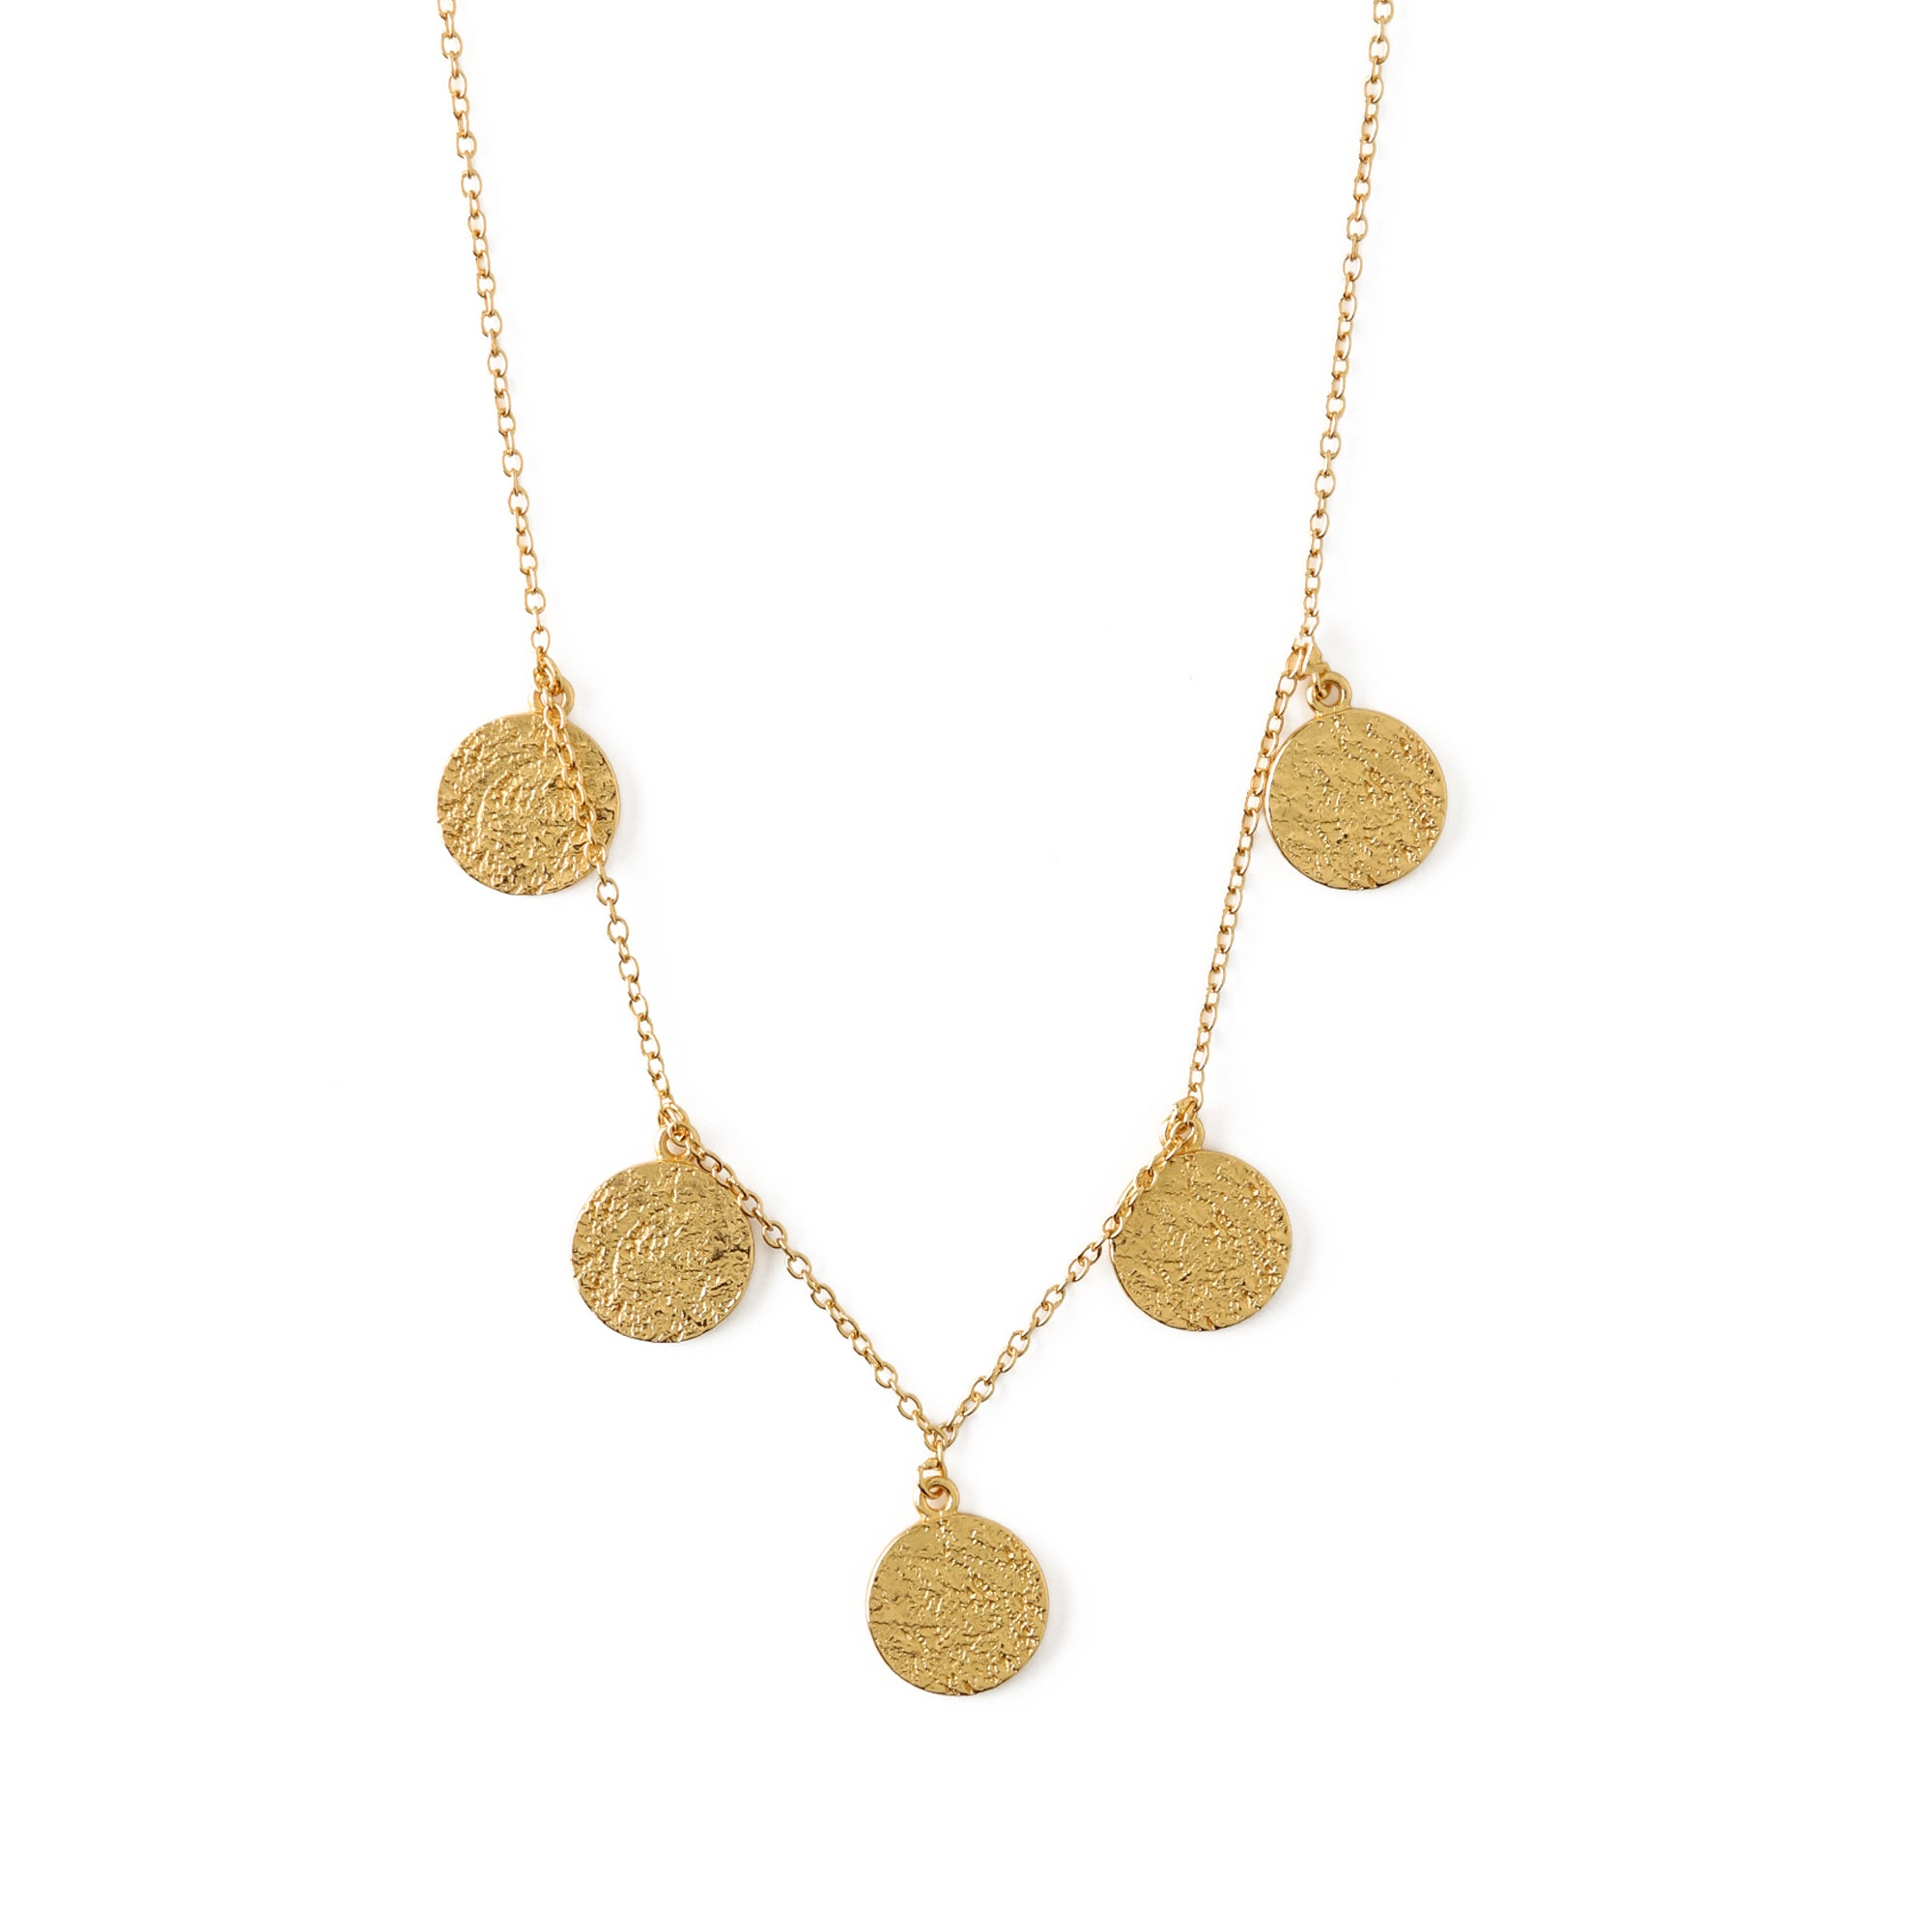 LUXE Hammered 5 Disc Necklace